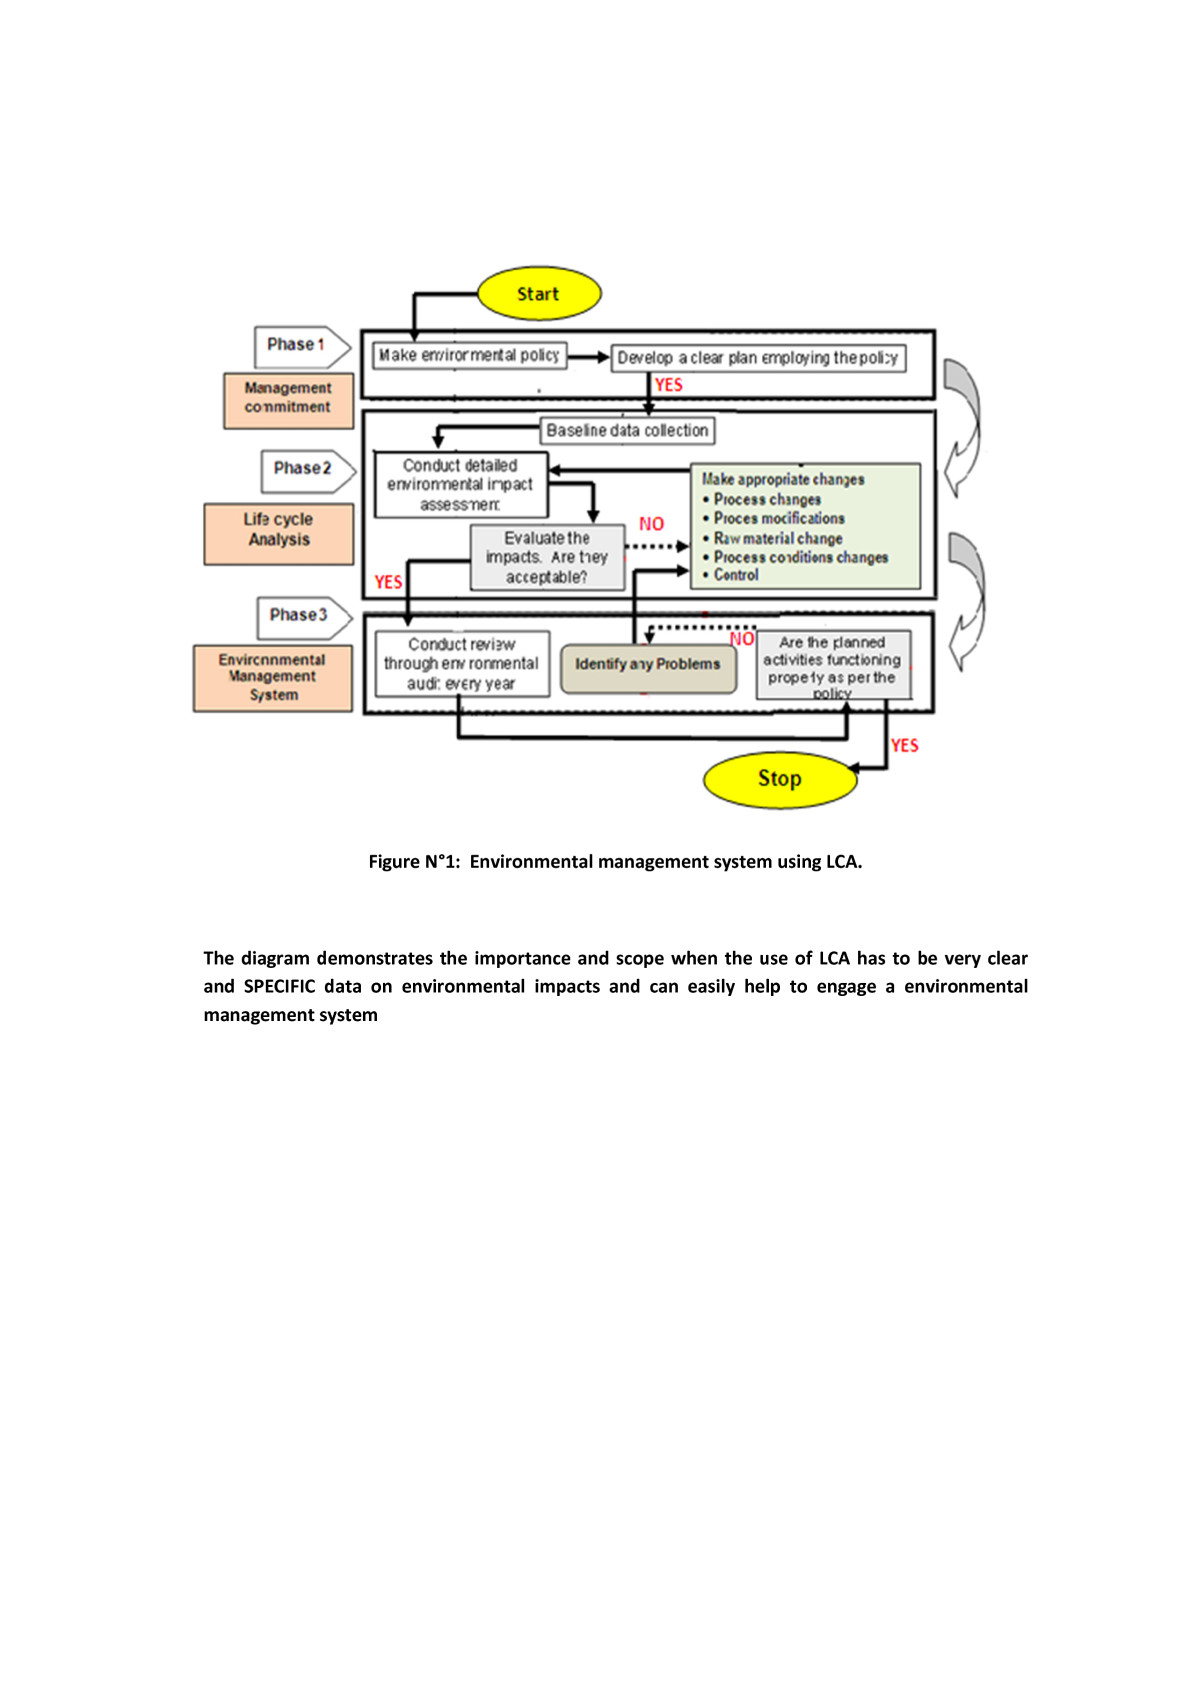 https://static-content.springer.com/image/art%3A10.1186%2F2052-336X-11-37/MediaObjects/40201_2012_Article_5034_Fig1_HTML.jpg